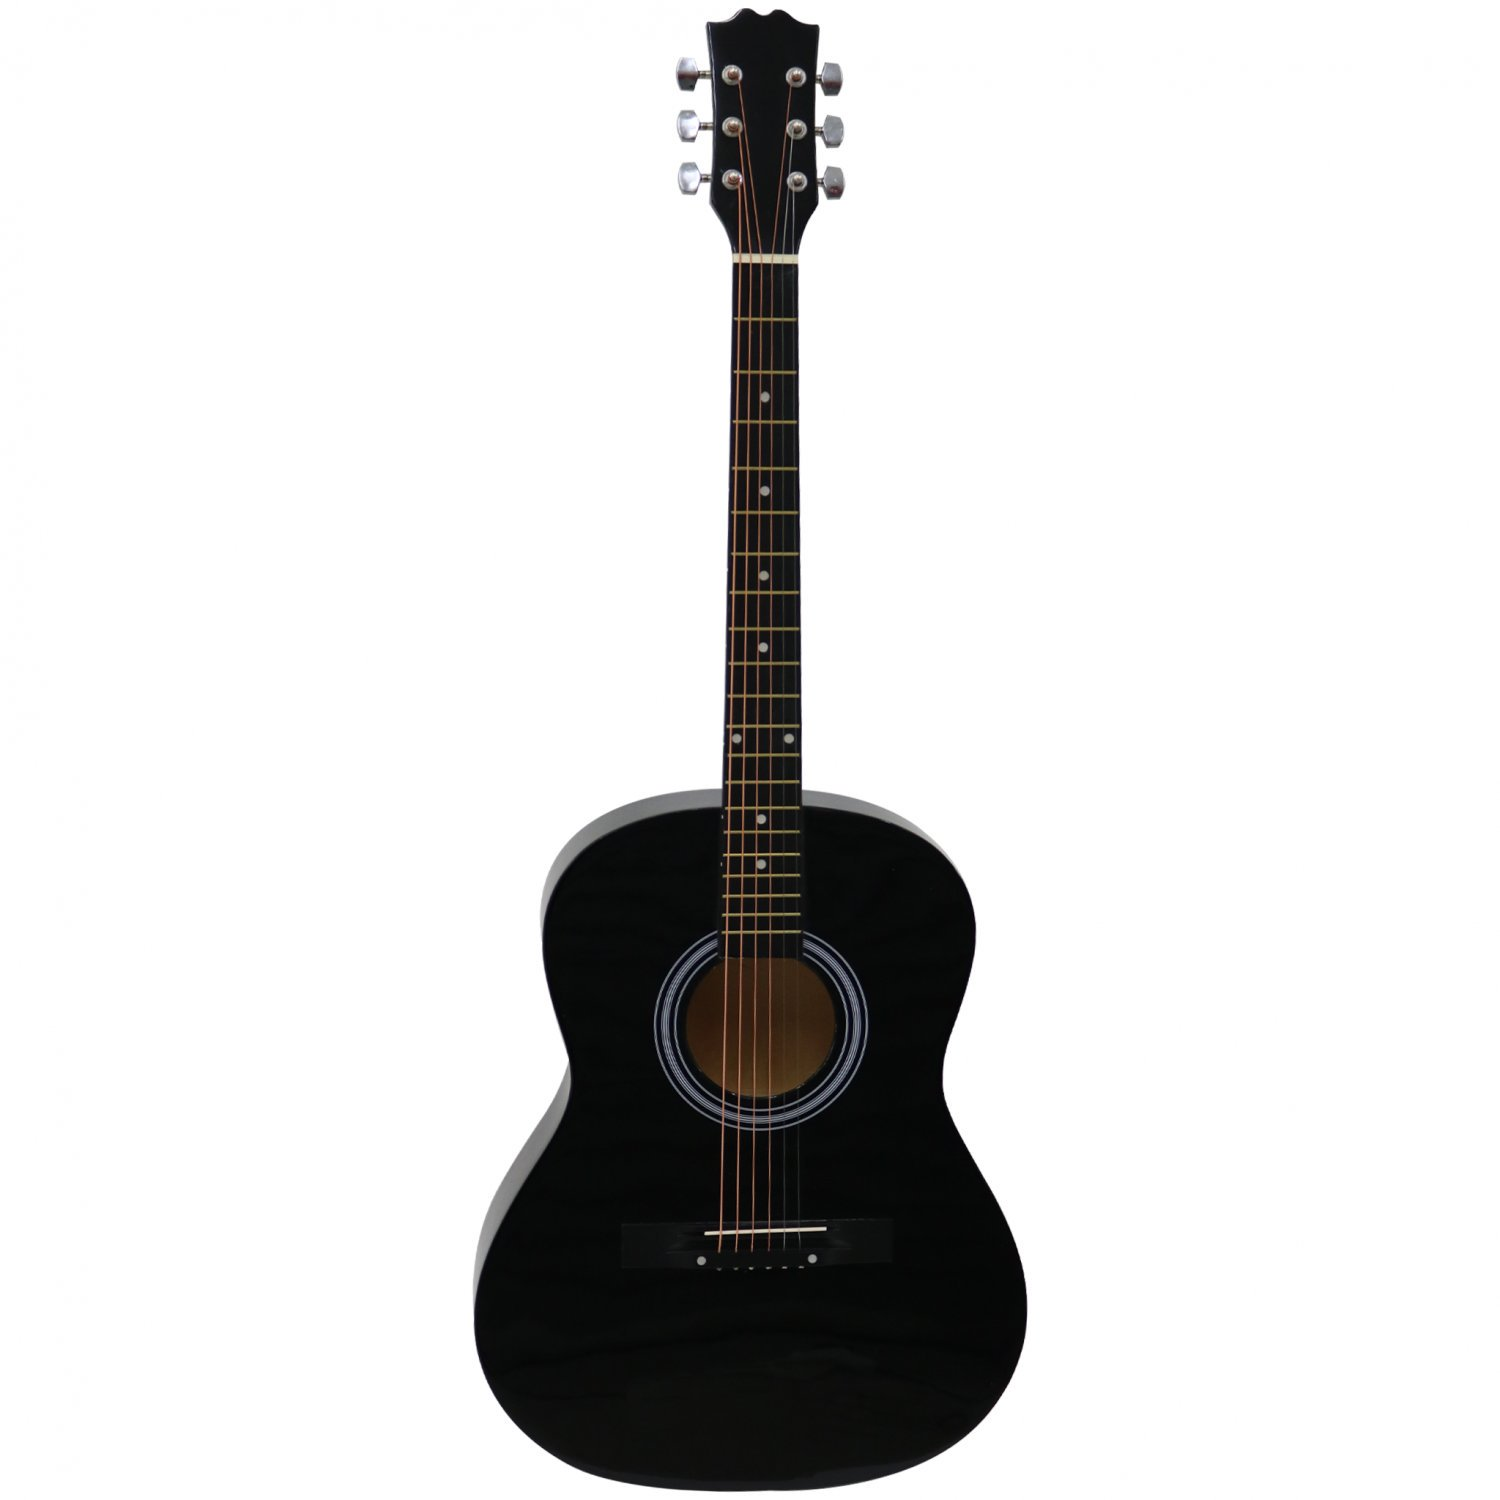 "Black 39"" Full Size 4/4 6 String Steel Strung Acoustic Guitar"